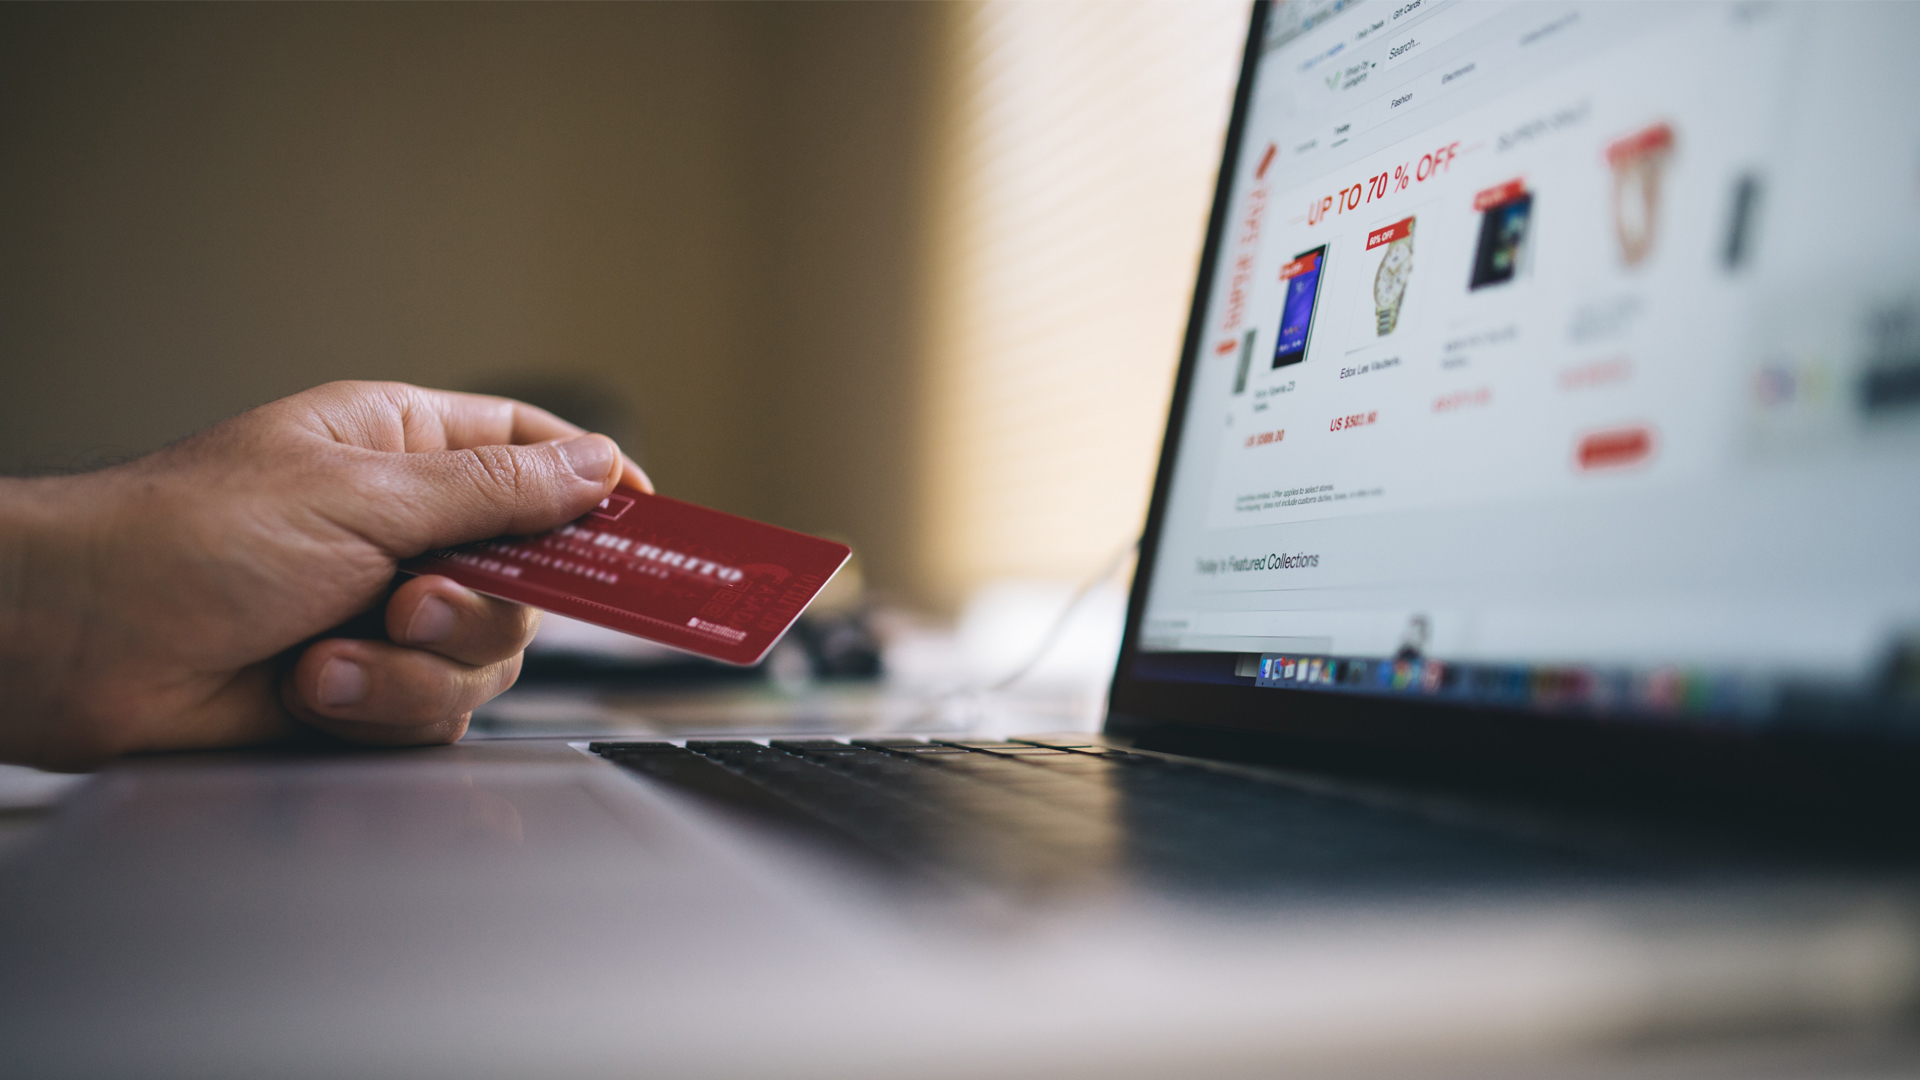 India's Draft E-commerce Policy Calls For Seller Parity And Discount Transparency